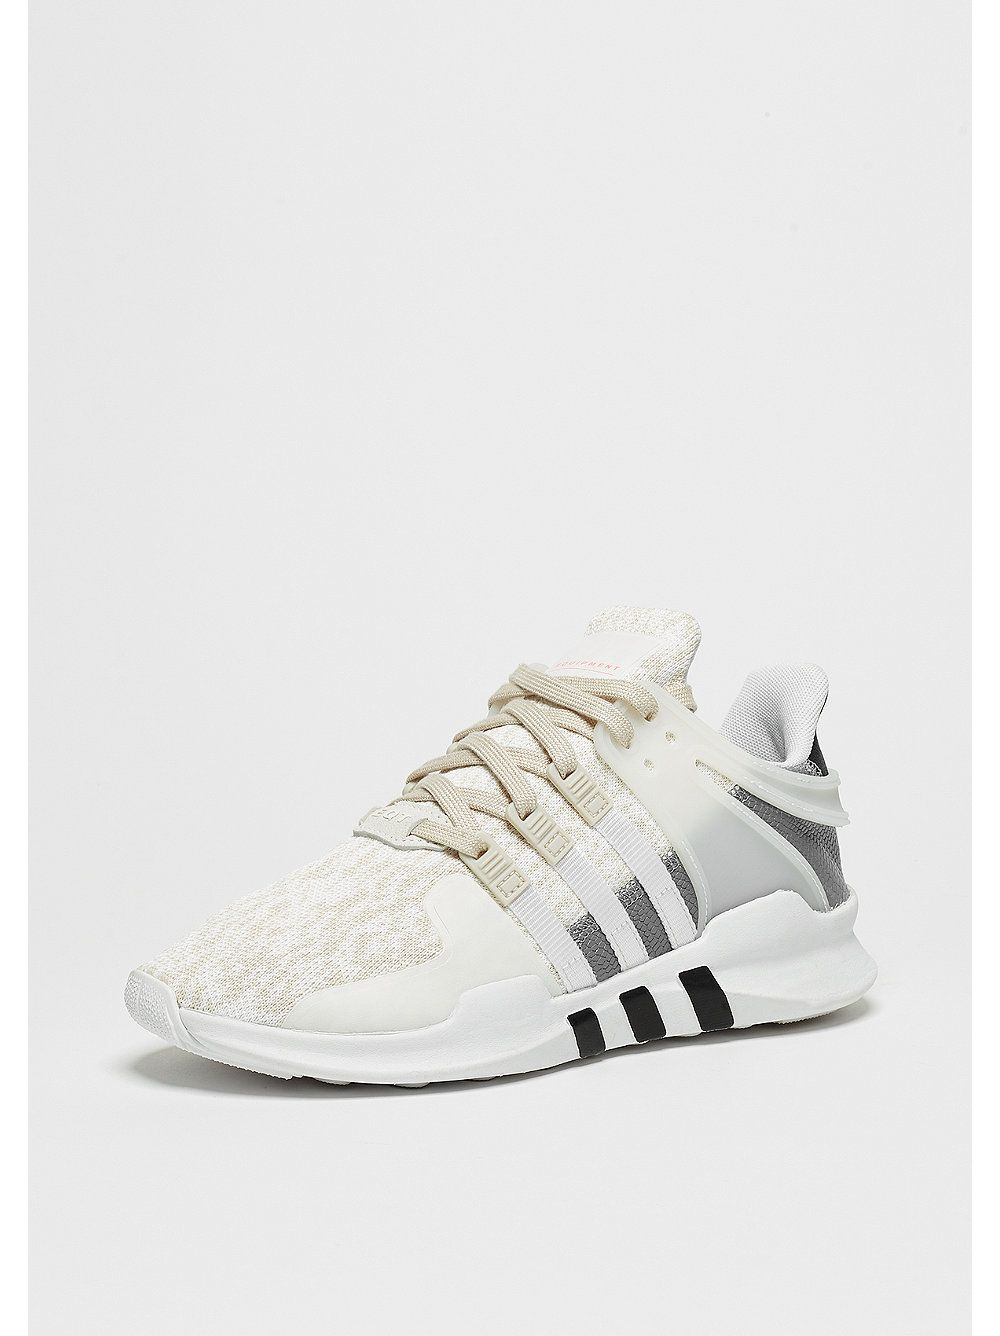 adidas beige eqt support adv trainers